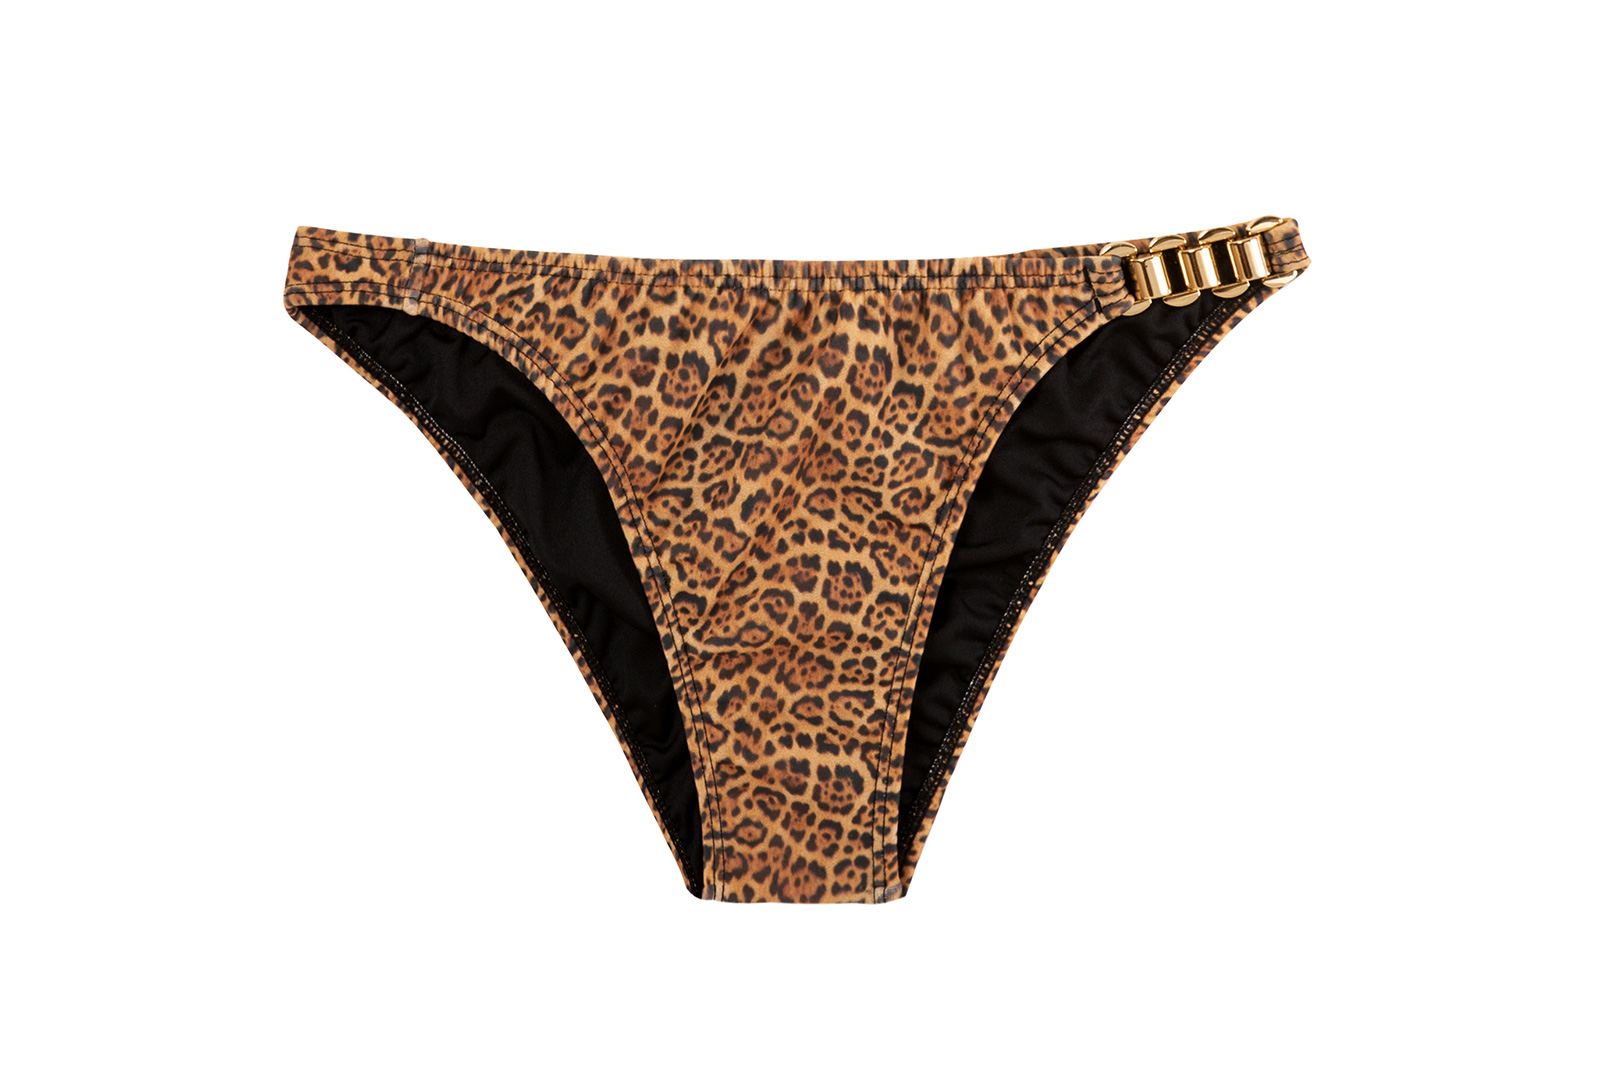 bd5710c9cd5 Brazilian Animal Print Bikini Bottom With Gold-tone Accents - Calcinha  Bikini Jaguatiric - Ellis Beach Wear